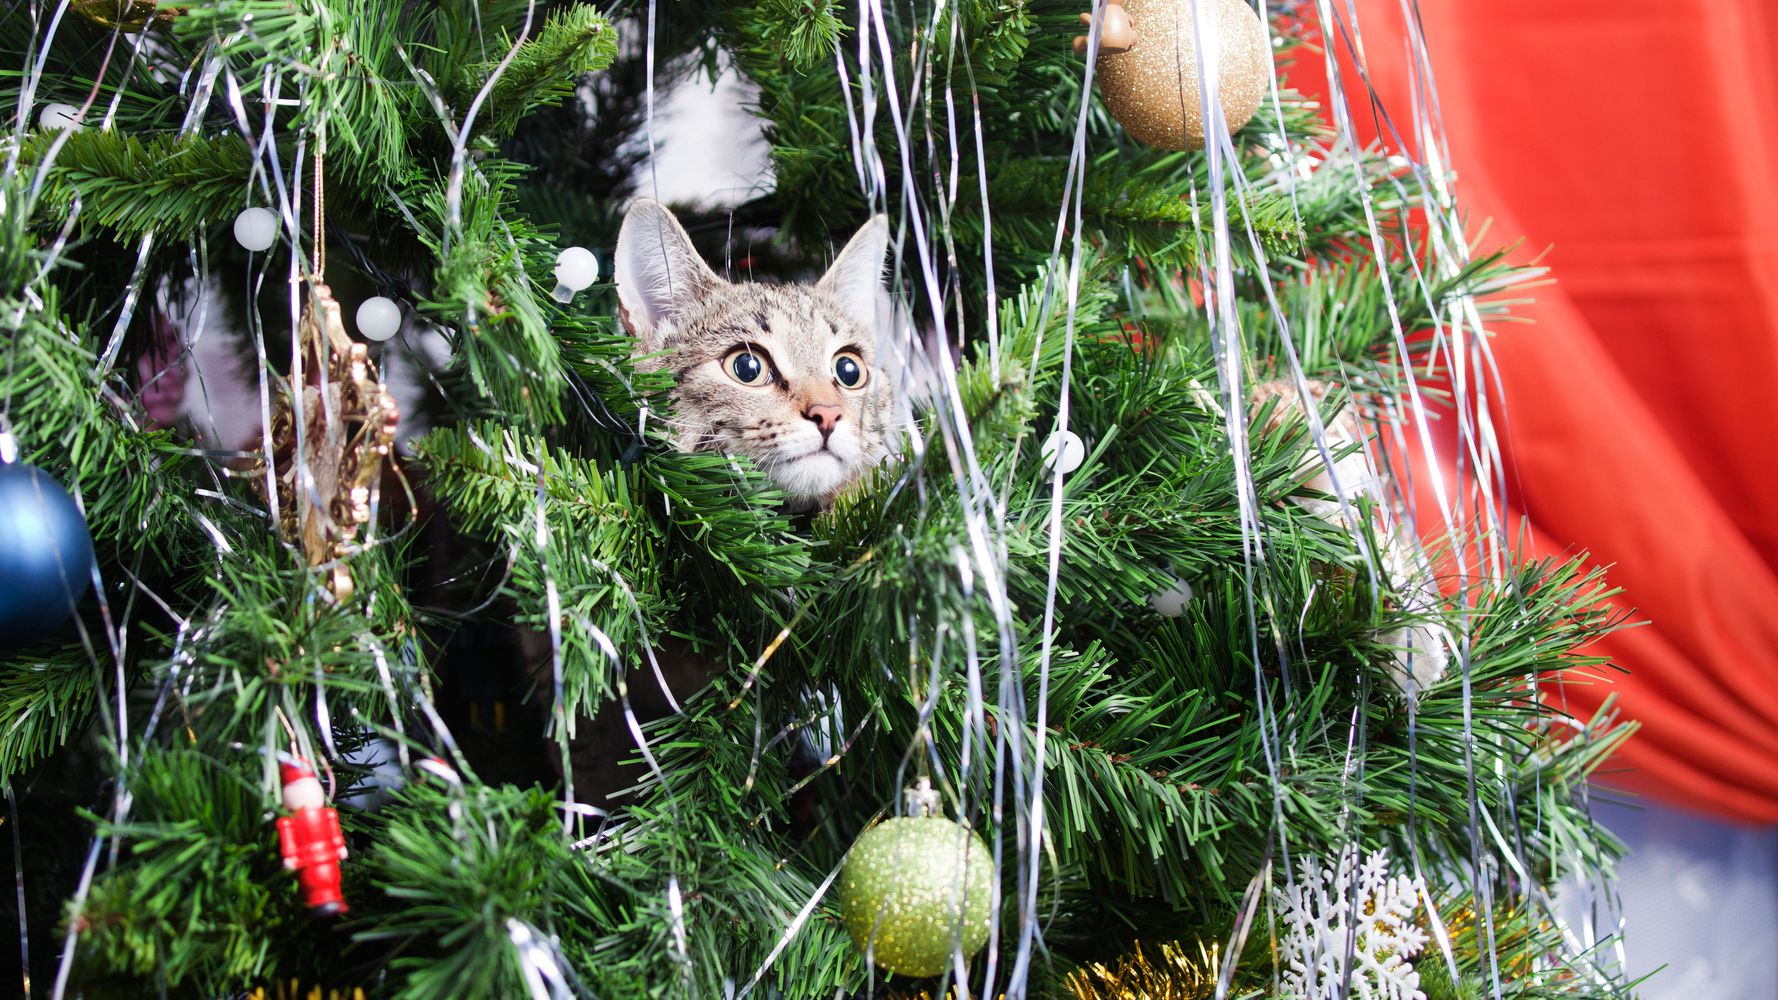 Watching These Cats Destroying Christmas Trees Will Make Your Day